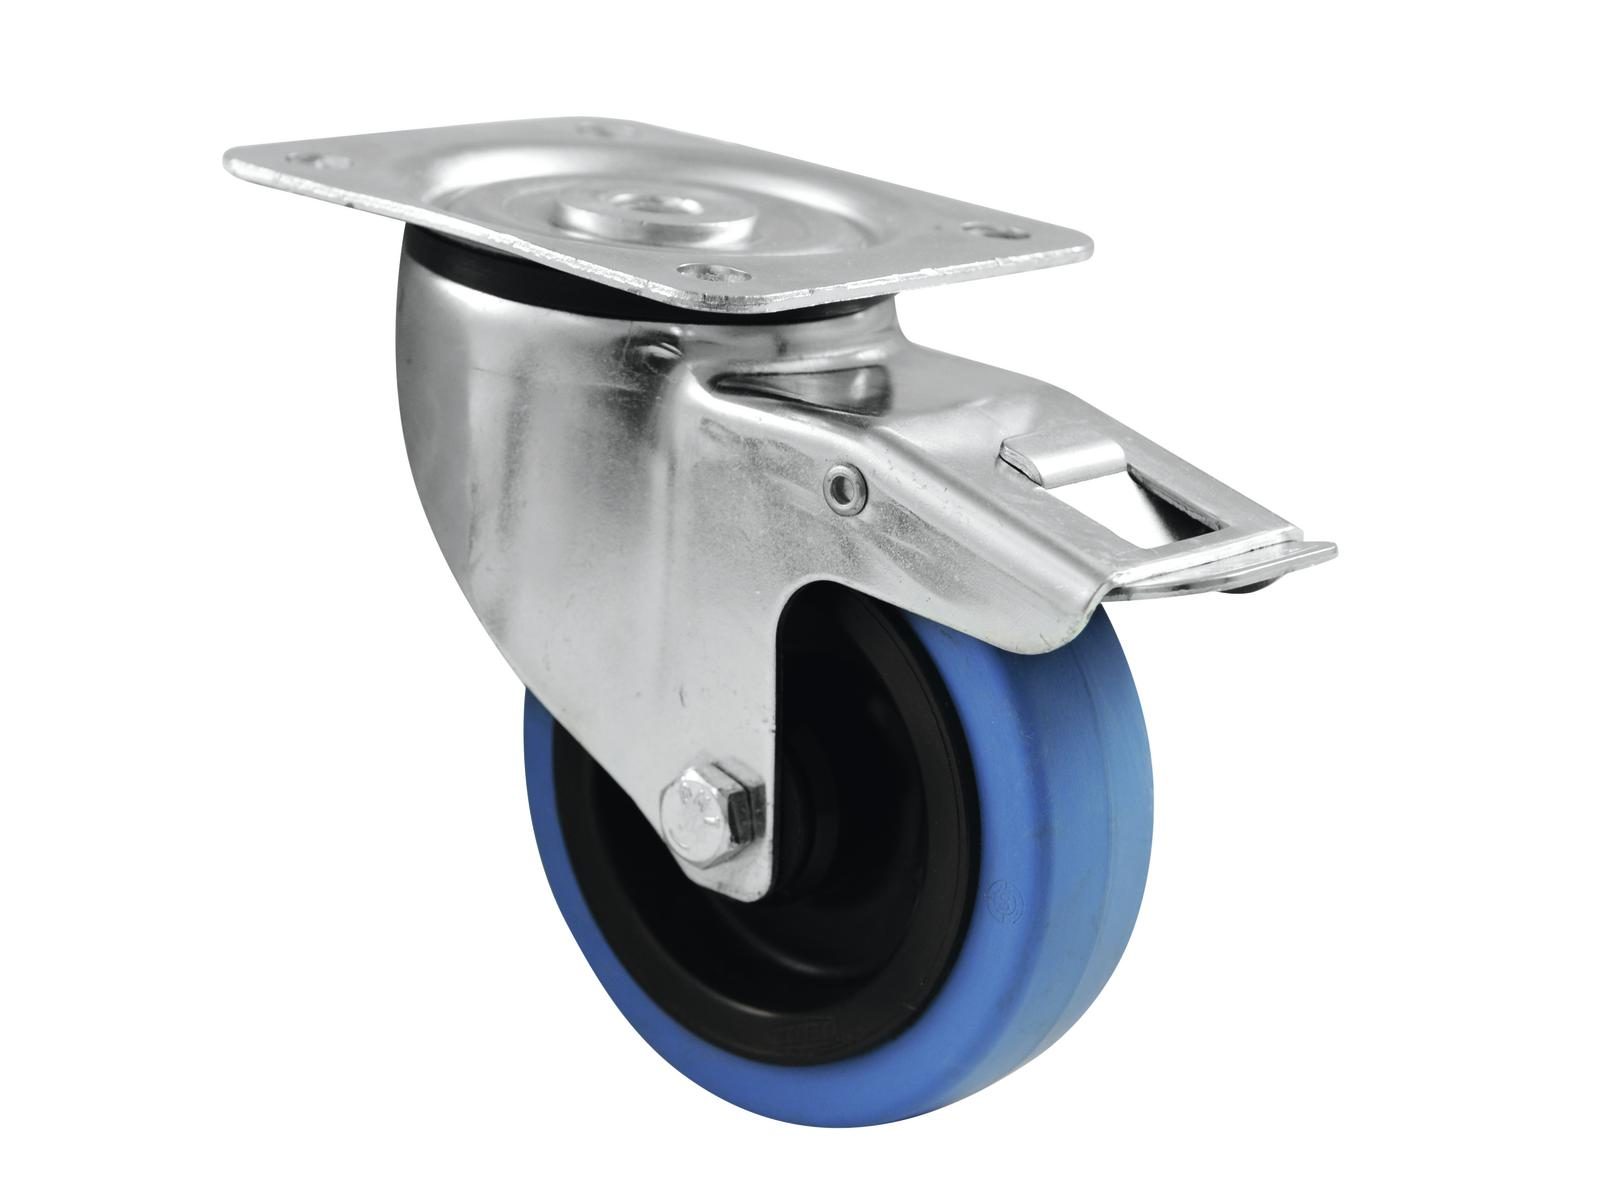 ROADINGER supporto rotante 100mm RUOTA BLU con freno